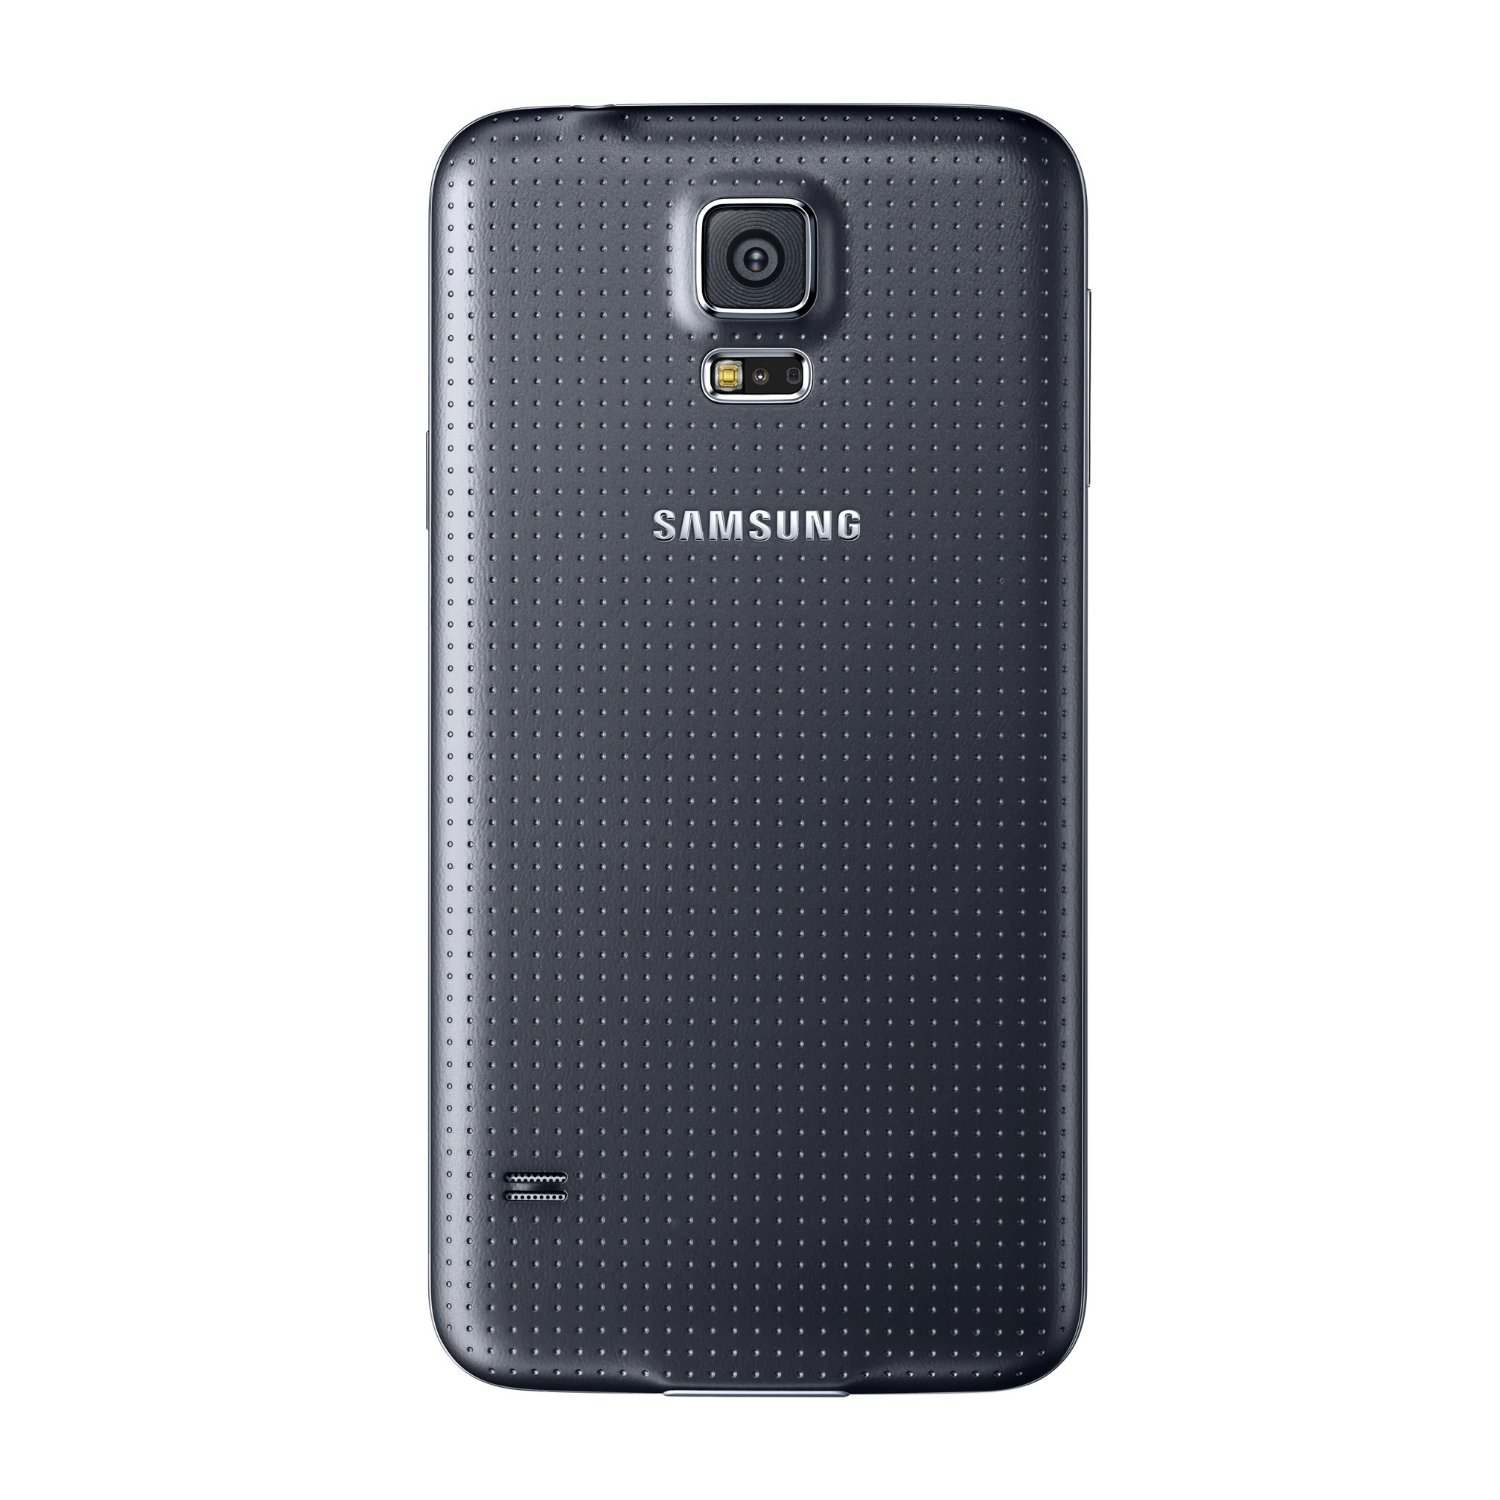 Cheap 9v Battery Charging Circuit Find Get Quotations Samsung Galaxy S5 Case Wireless Cover Black